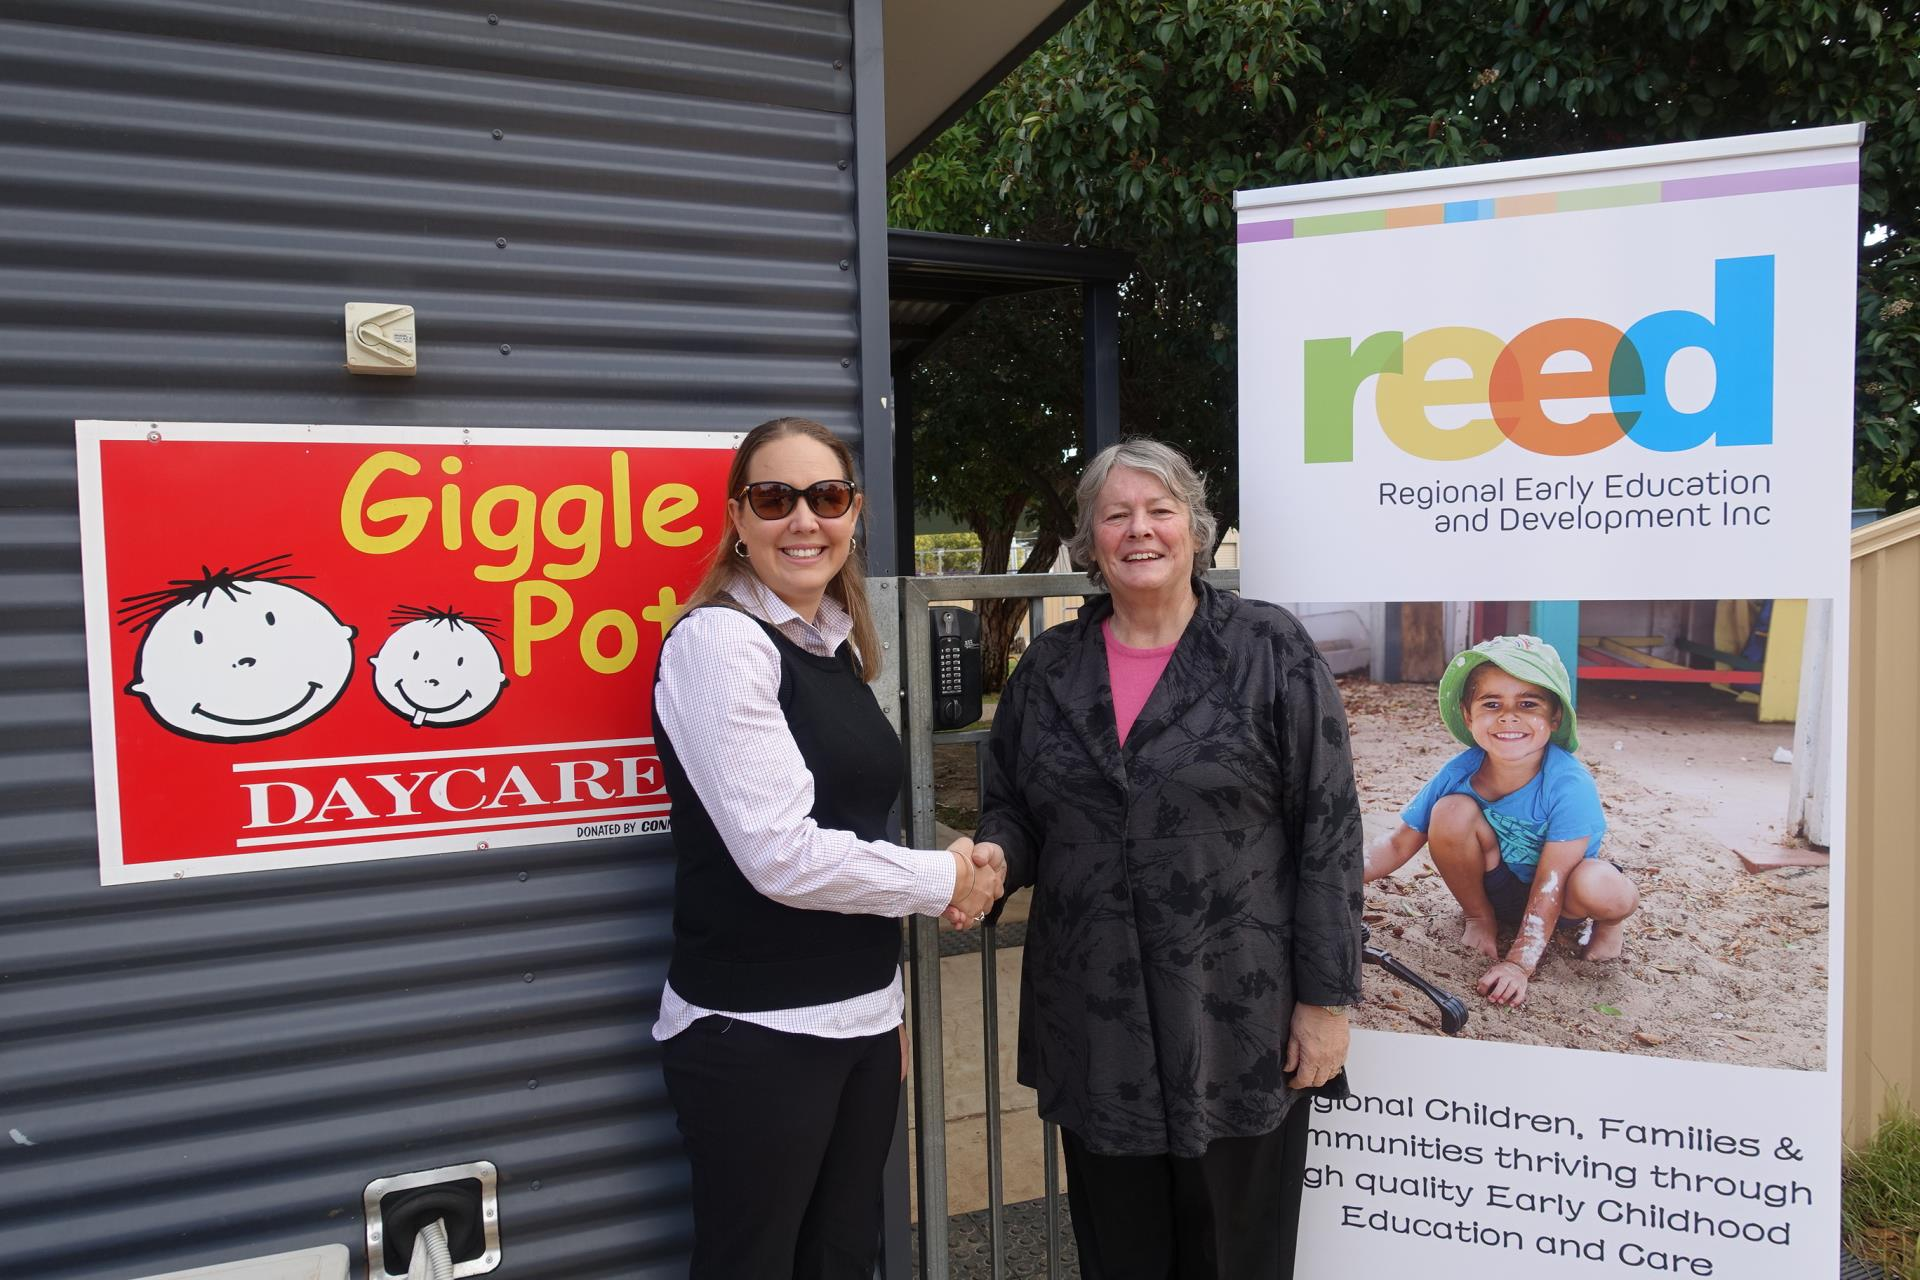 CORRIGIN BECOMES THE FIRST WHEATBELT CHILDCARE CENTRE TO JOIN REED